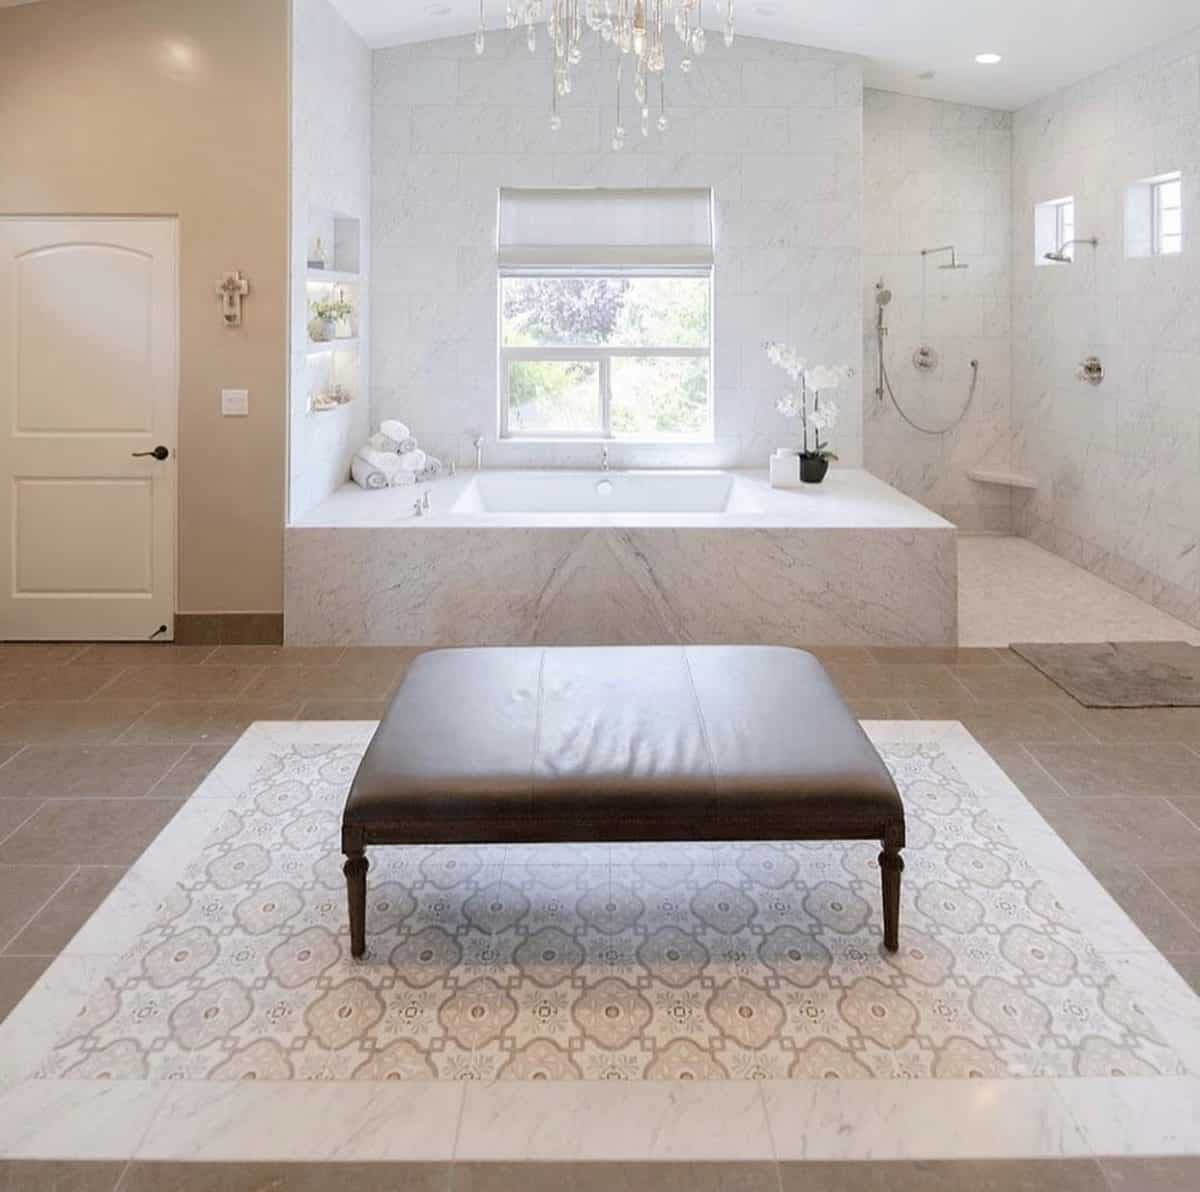 Davenport patterned tile rug in modern master bathroom